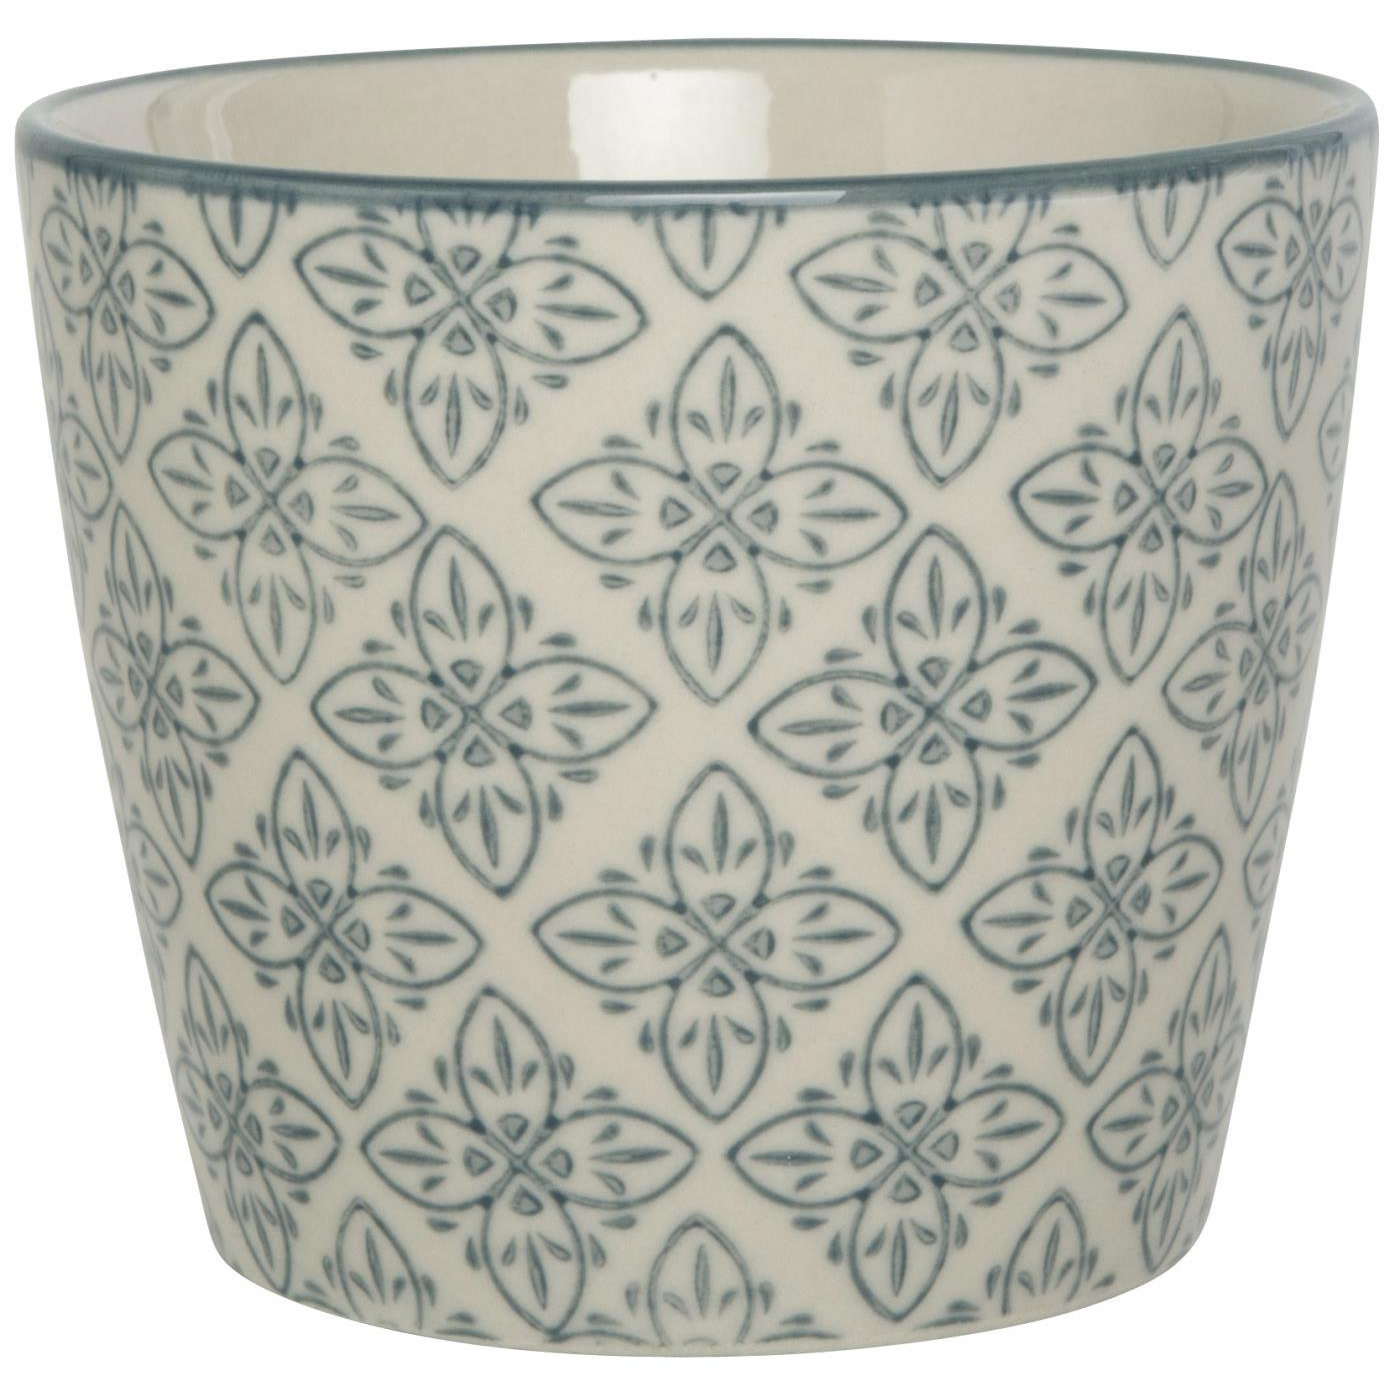 Becher gross - mit grauem Ornament - Muster D - Casablanca - IB Laursen